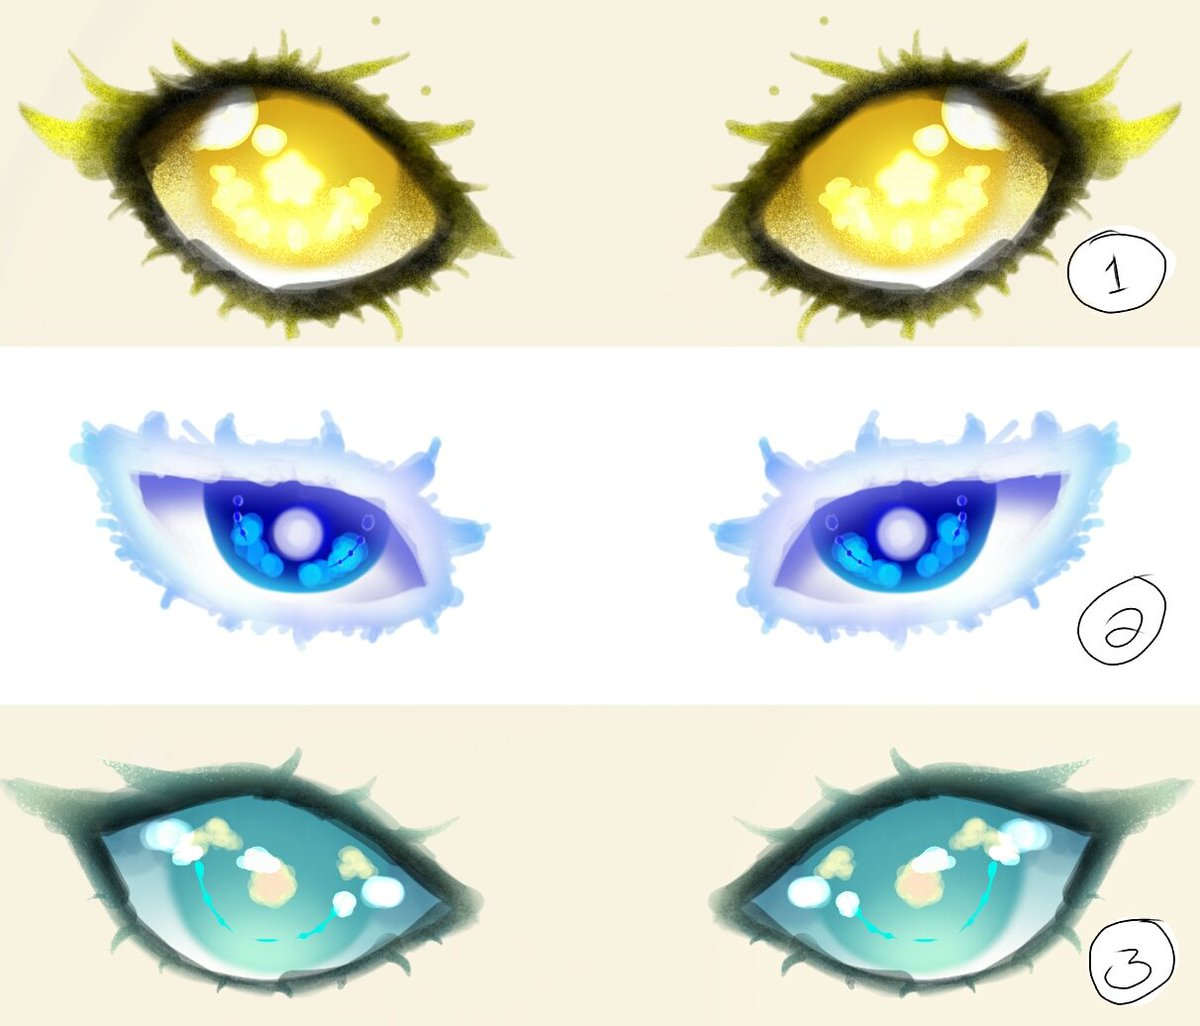 Art Artistsontwitter Digitalart Digitalartist Drawing Draw Ibispaintx Artwork Artist Animedrawing AnimeArt Animeeyes Eyes Animeeyesdrawing